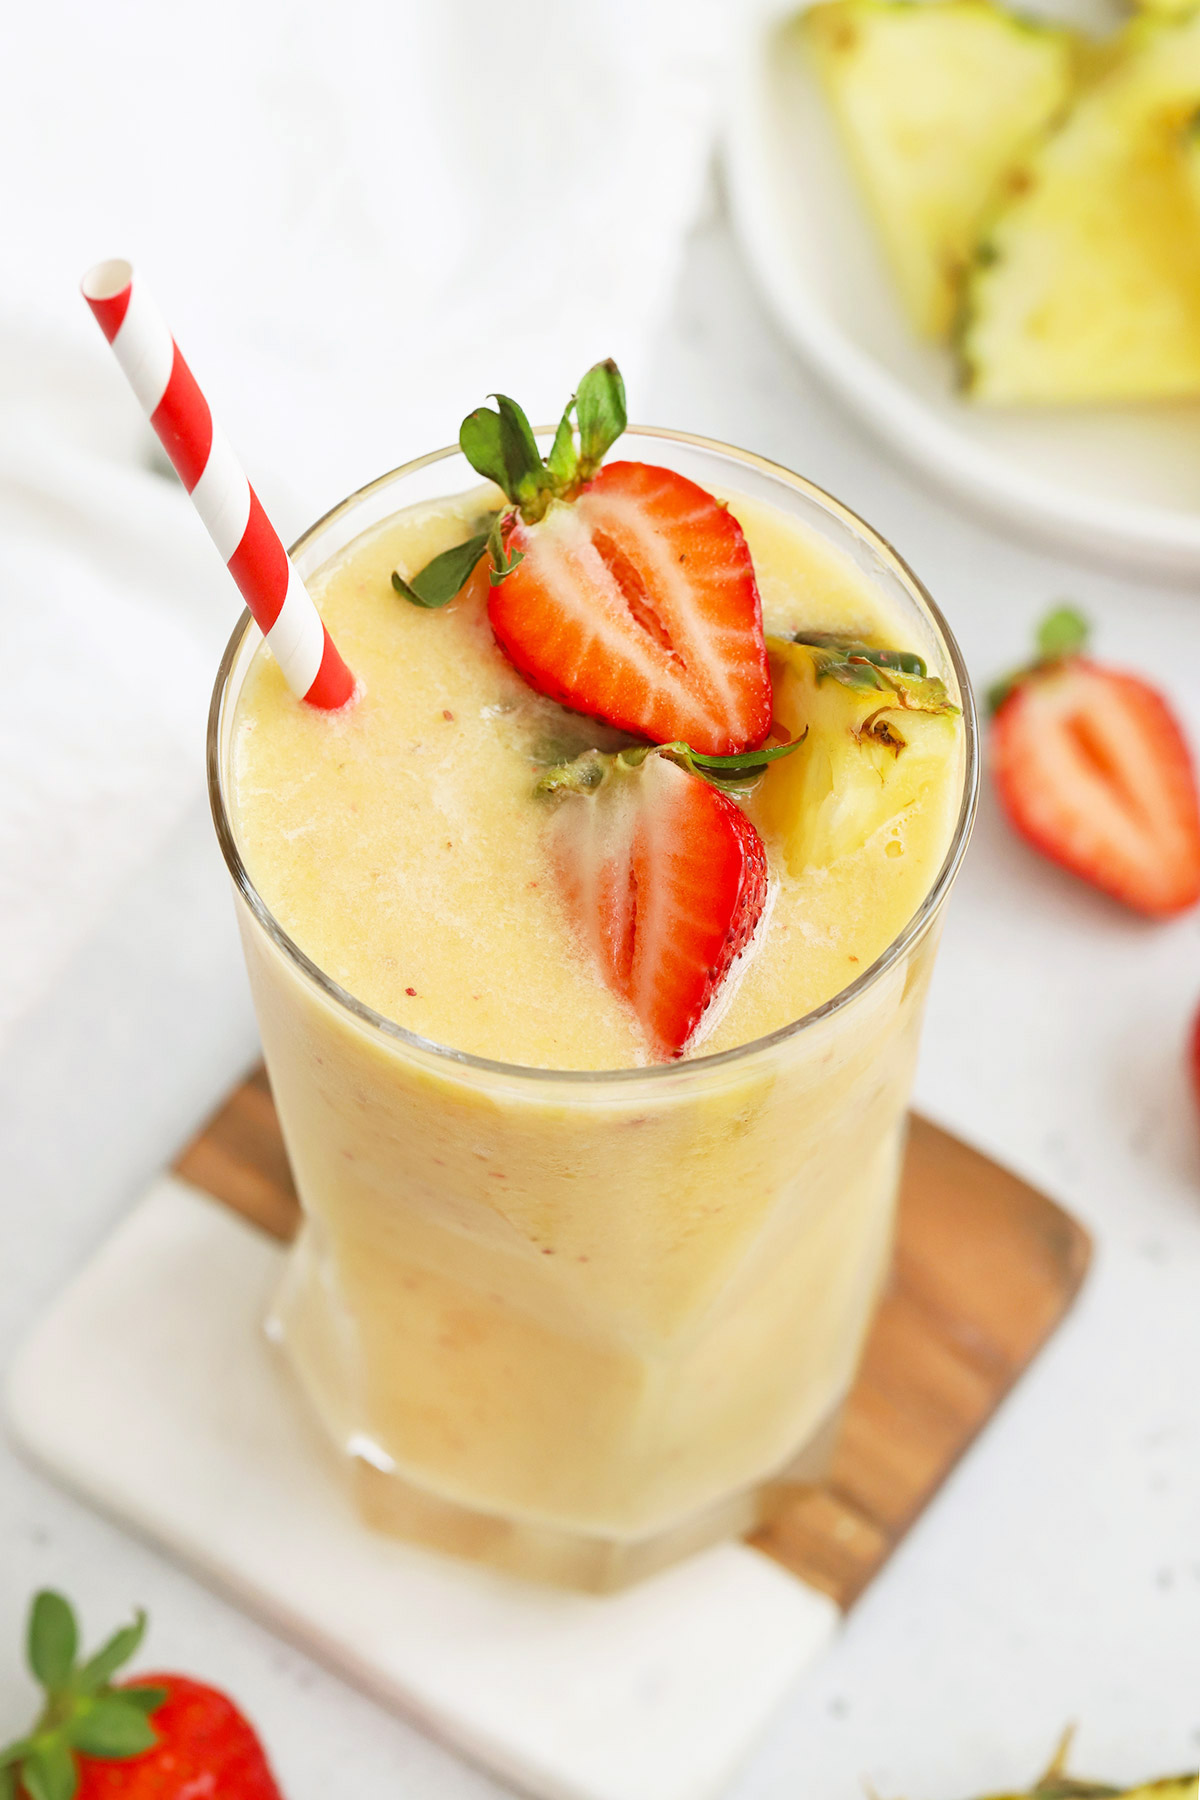 Glass of Strawberry Orange Sunrise Smoothie topped with fresh pineapple and strawberries with a red and white stripe straw